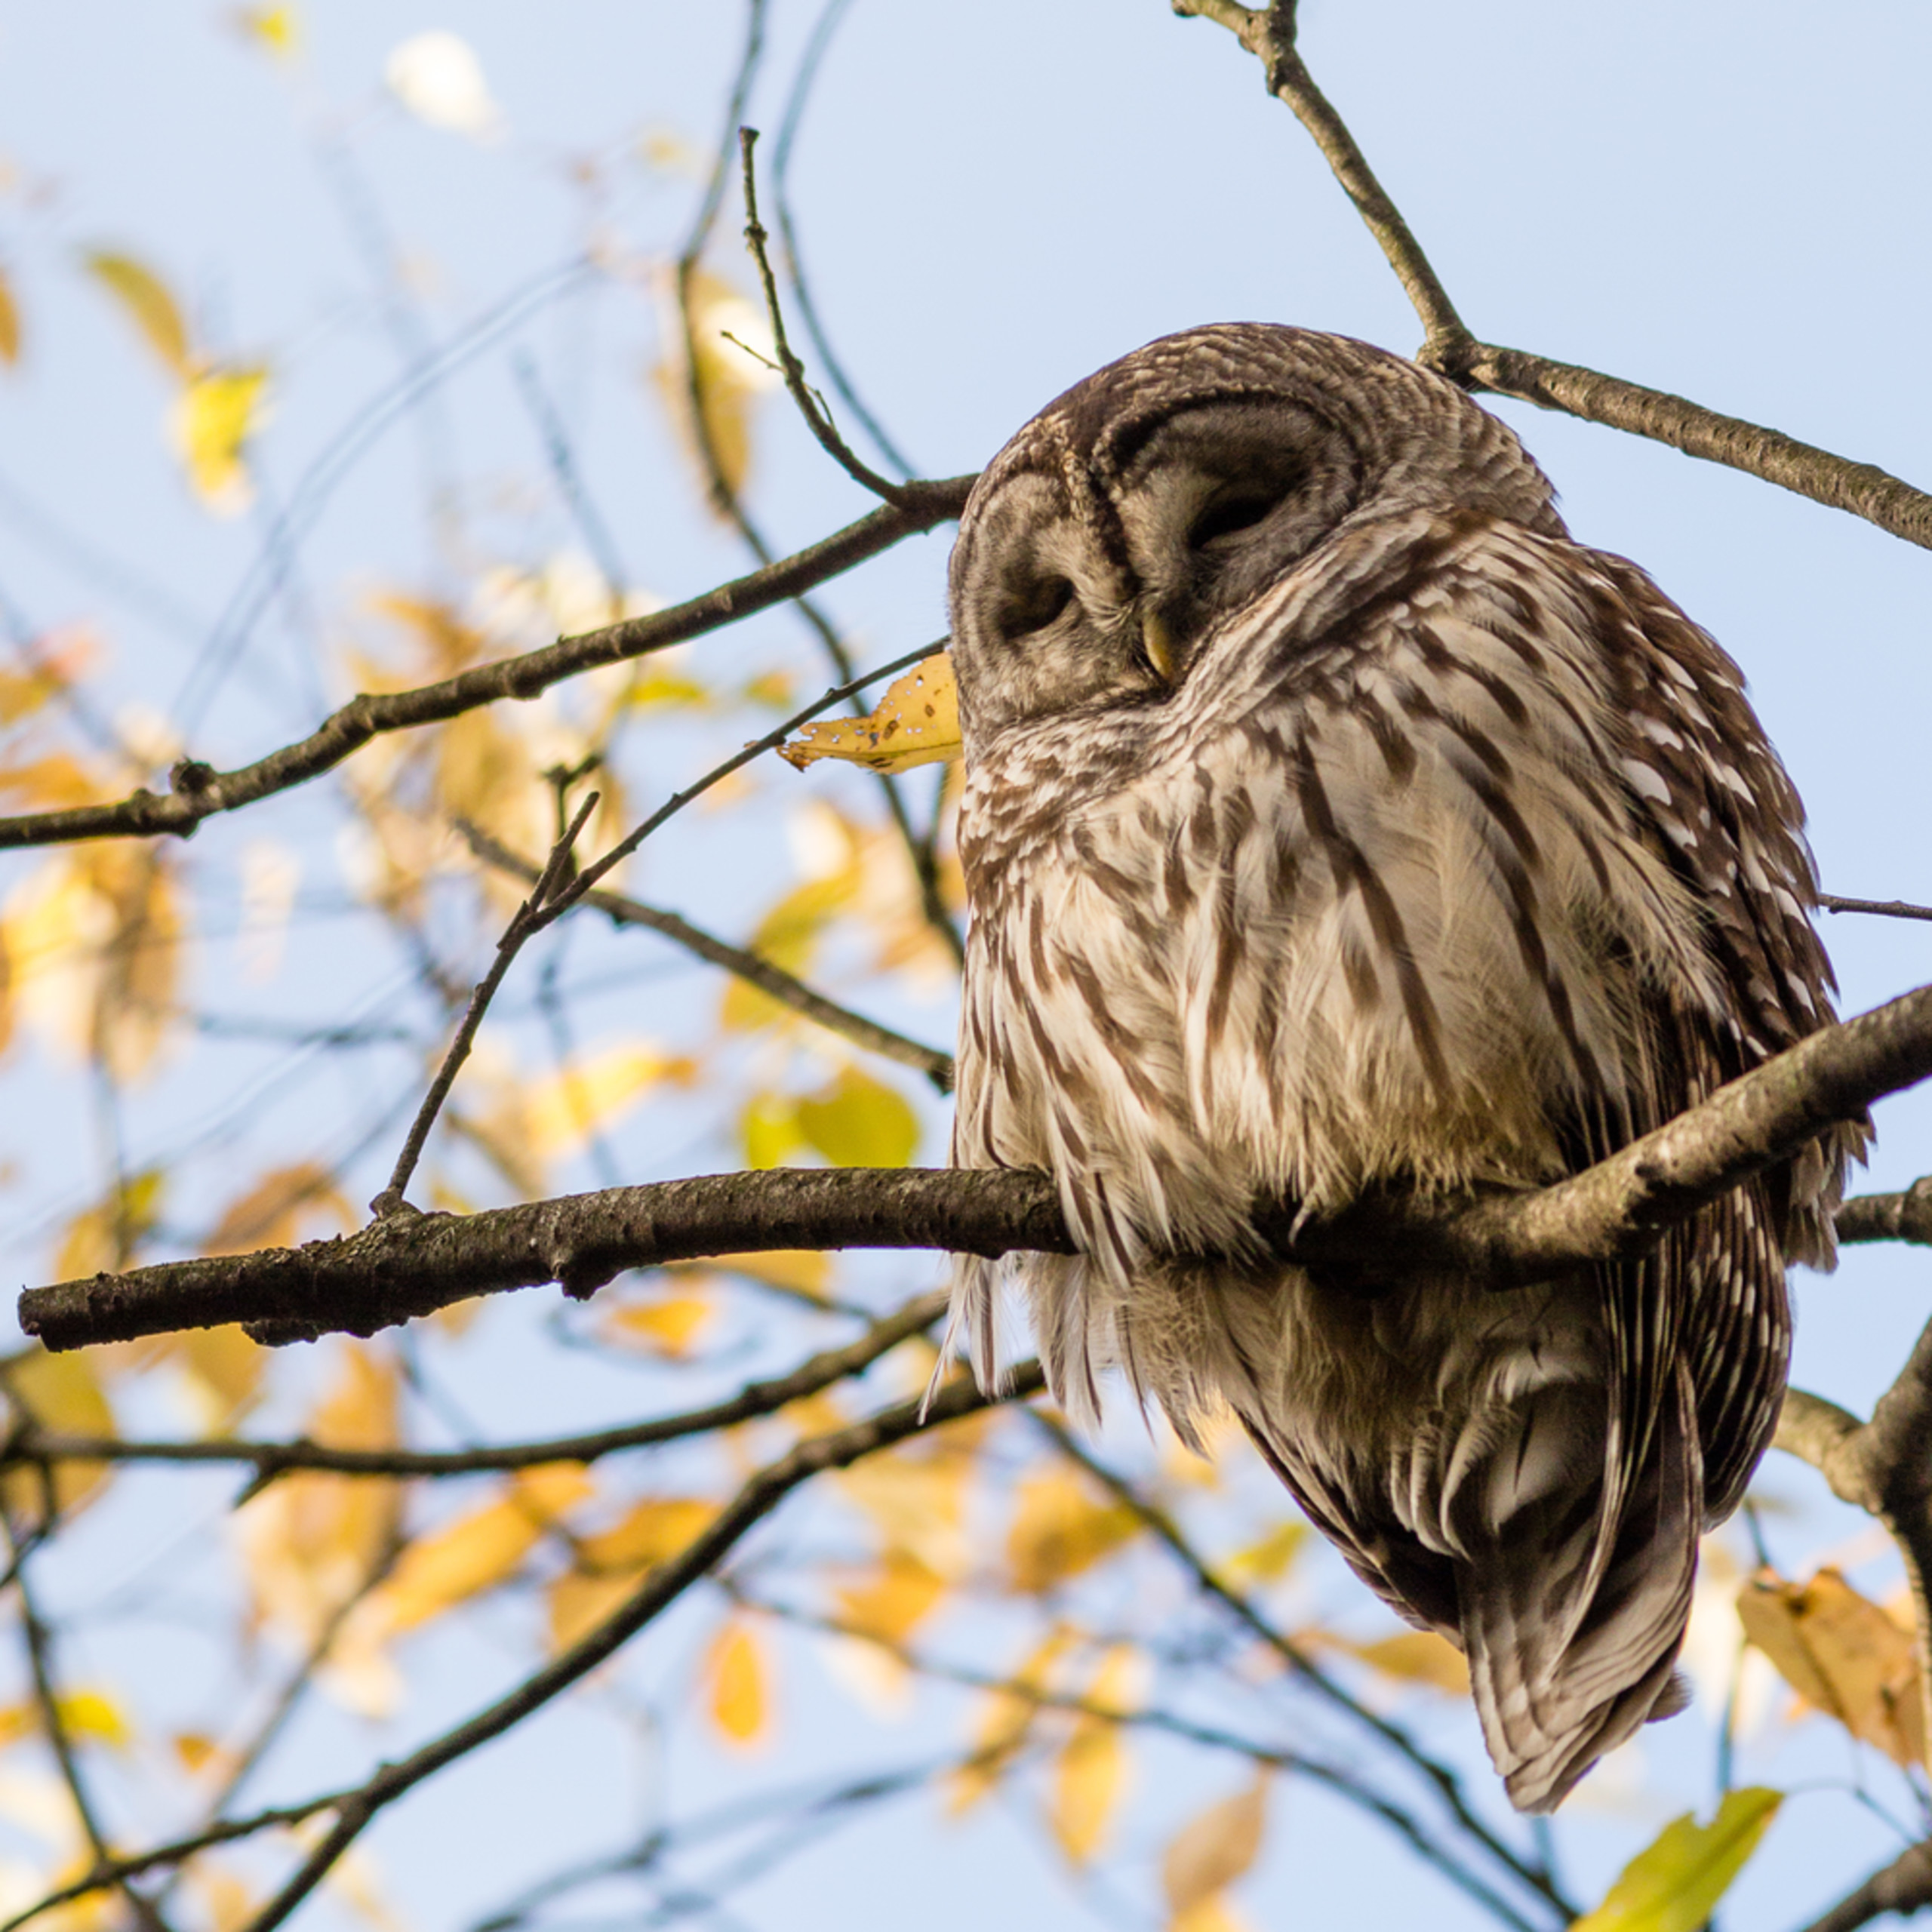 20161022 barred owl 00969 agbsyd